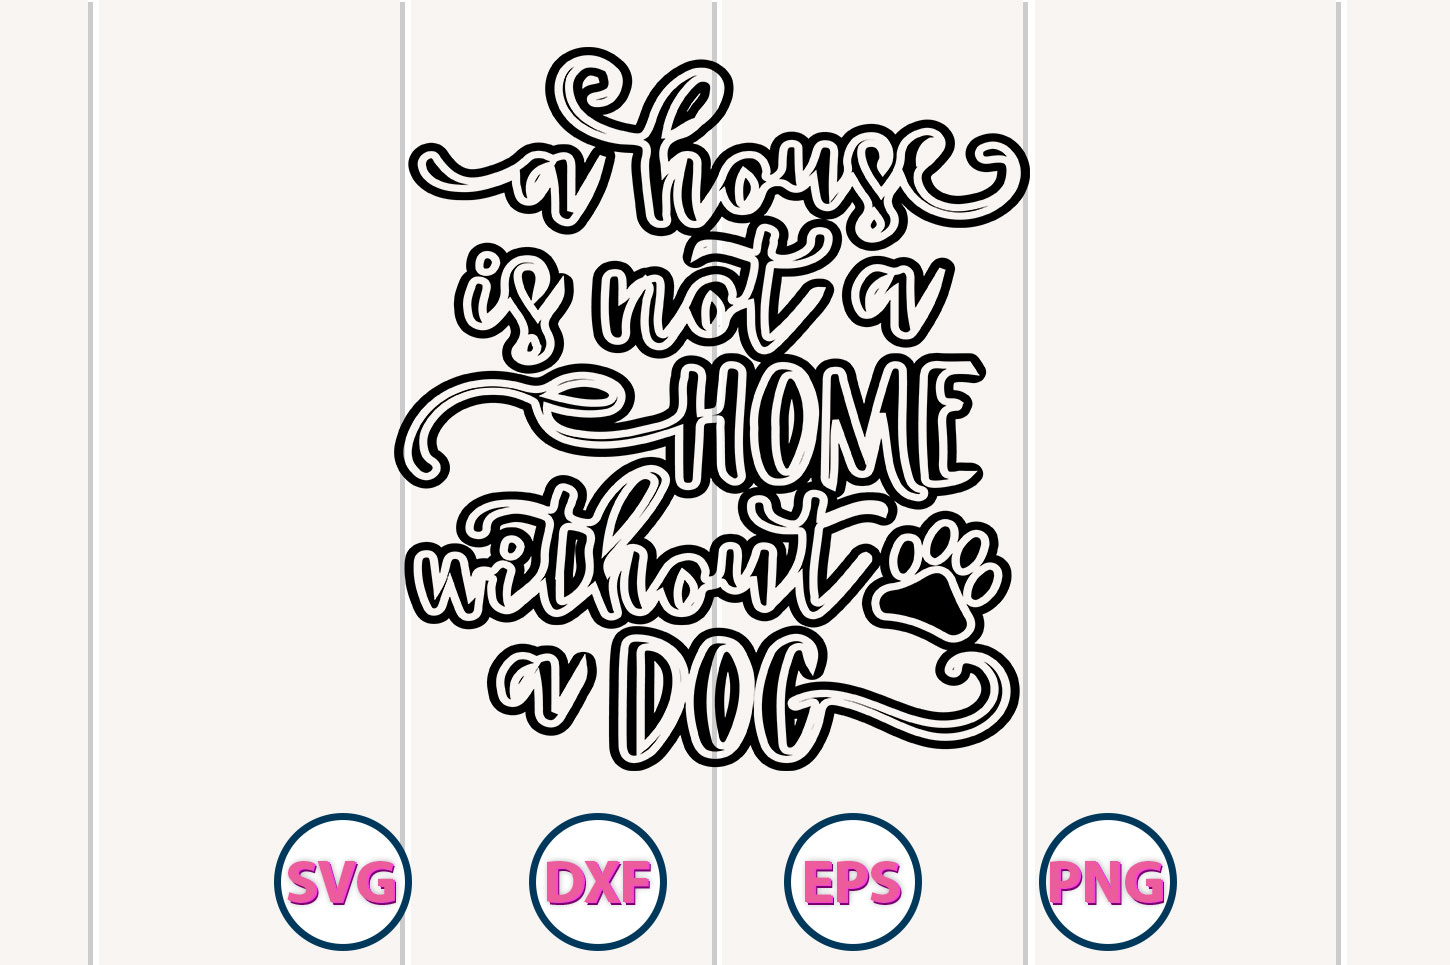 Download Free Dog File Graphic By Graphiccycle Creative Fabrica for Cricut Explore, Silhouette and other cutting machines.